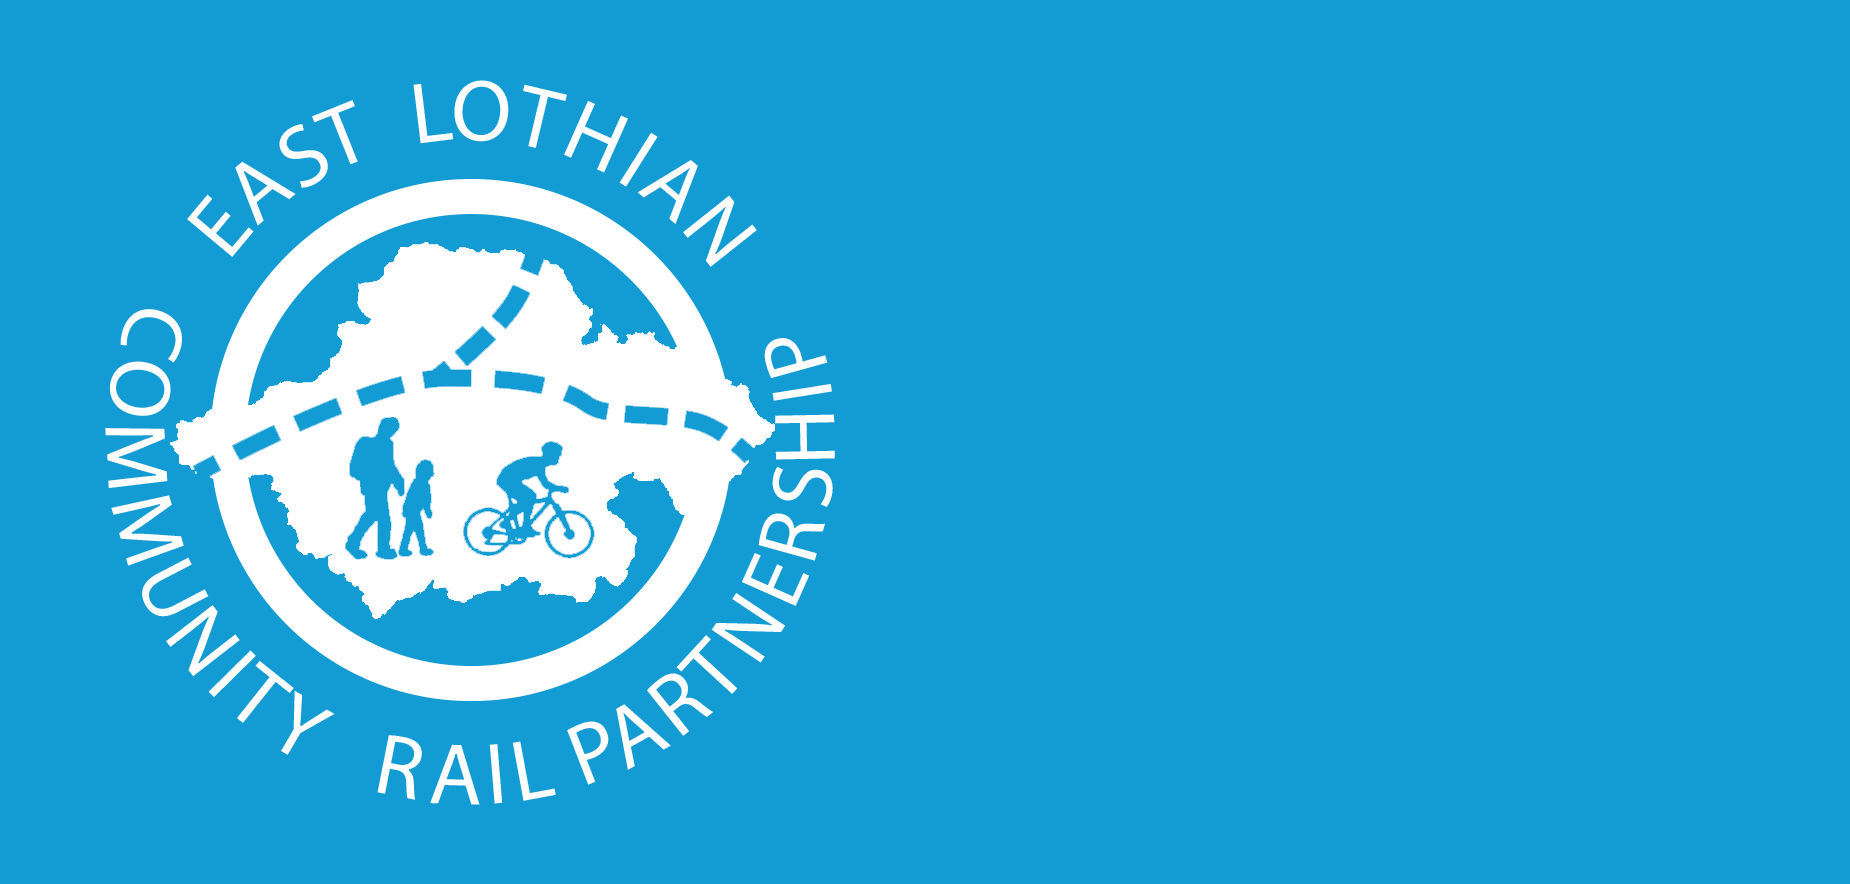 East Lothian Community Rail Partnership